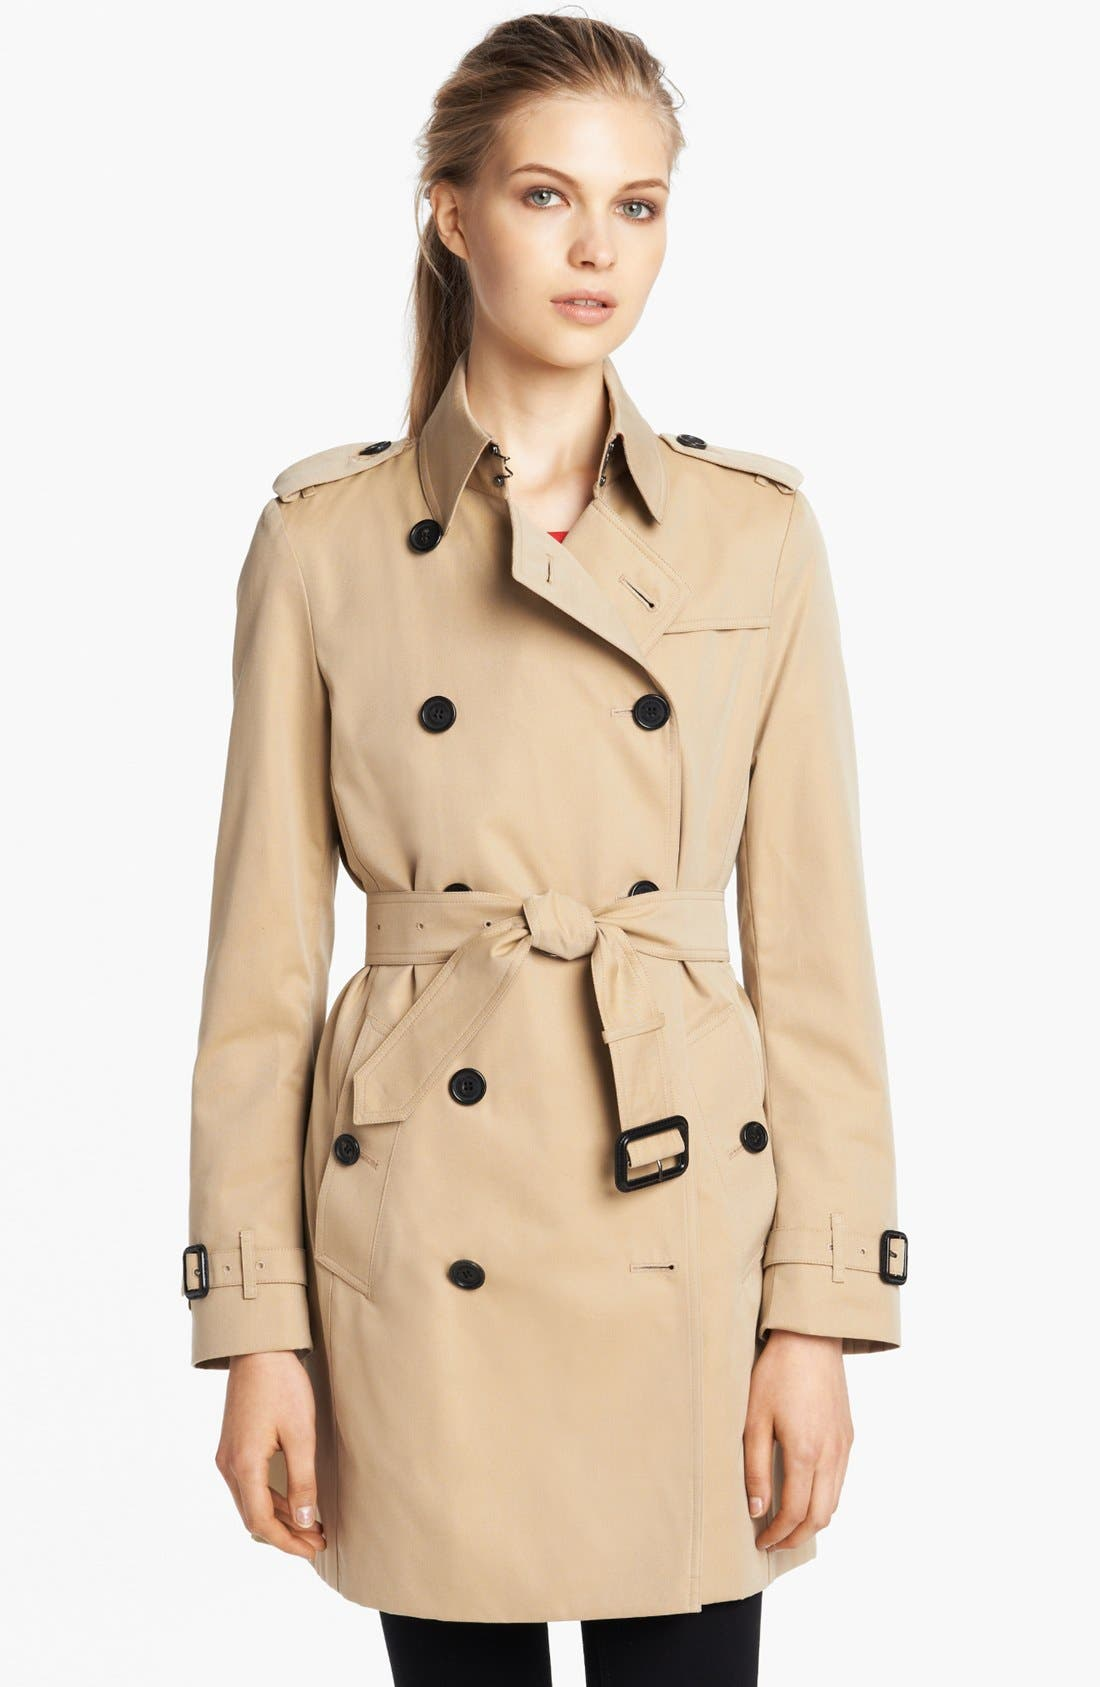 'Buckingham' Double Breasted Cotton Trench,                             Main thumbnail 1, color,                             251